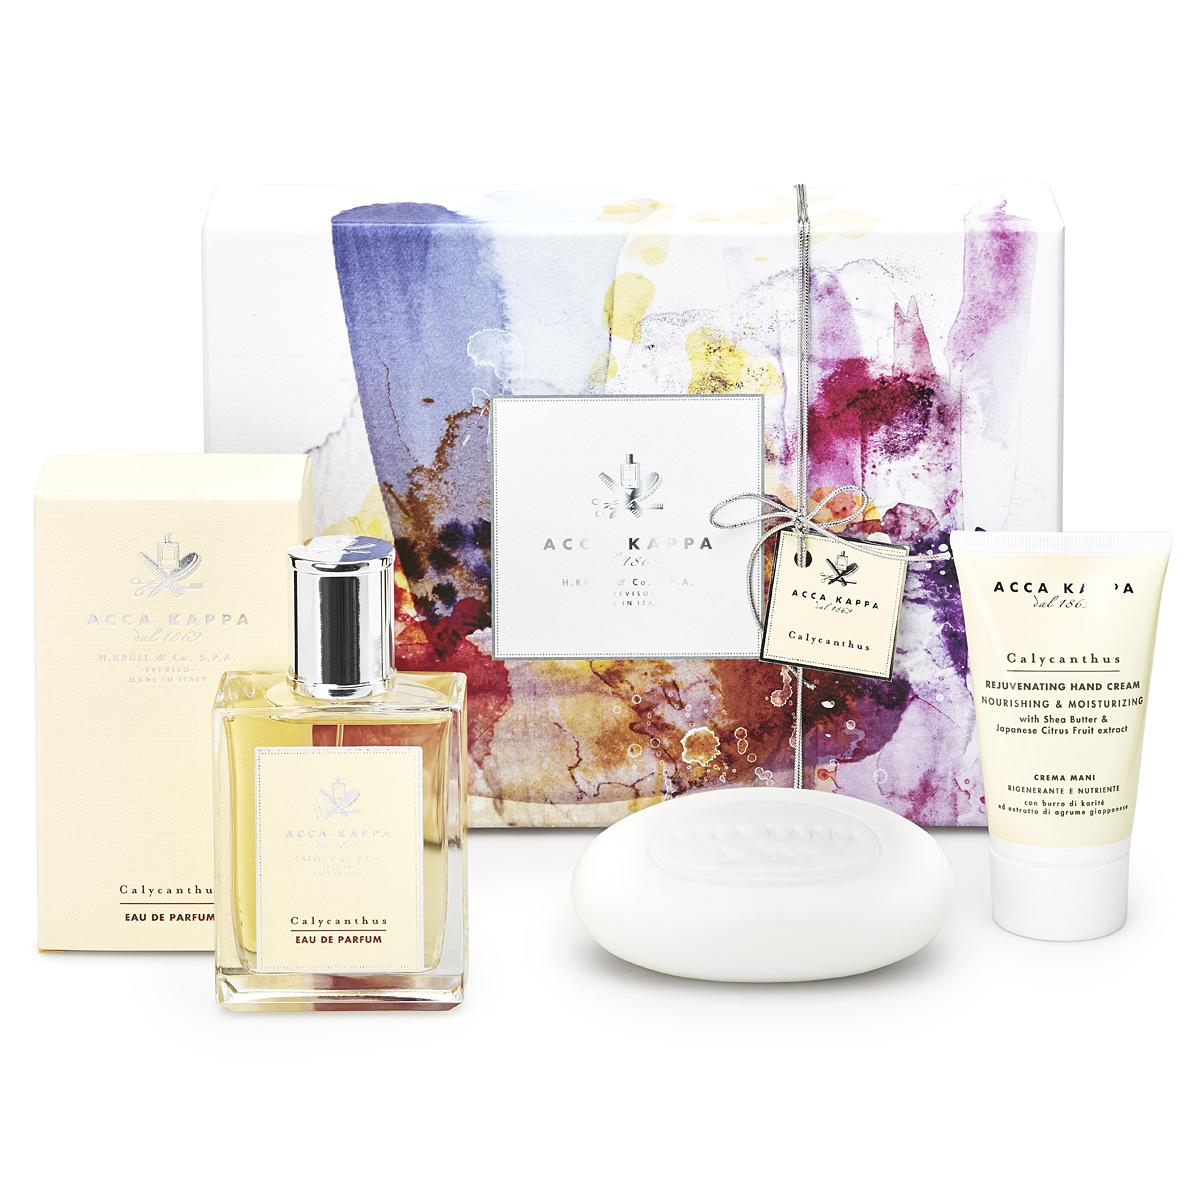 ACCA KAPPA Calycanthus Gift Set, Eau de Parfum 100ml, Soap 150g, Hand Cream 75ml